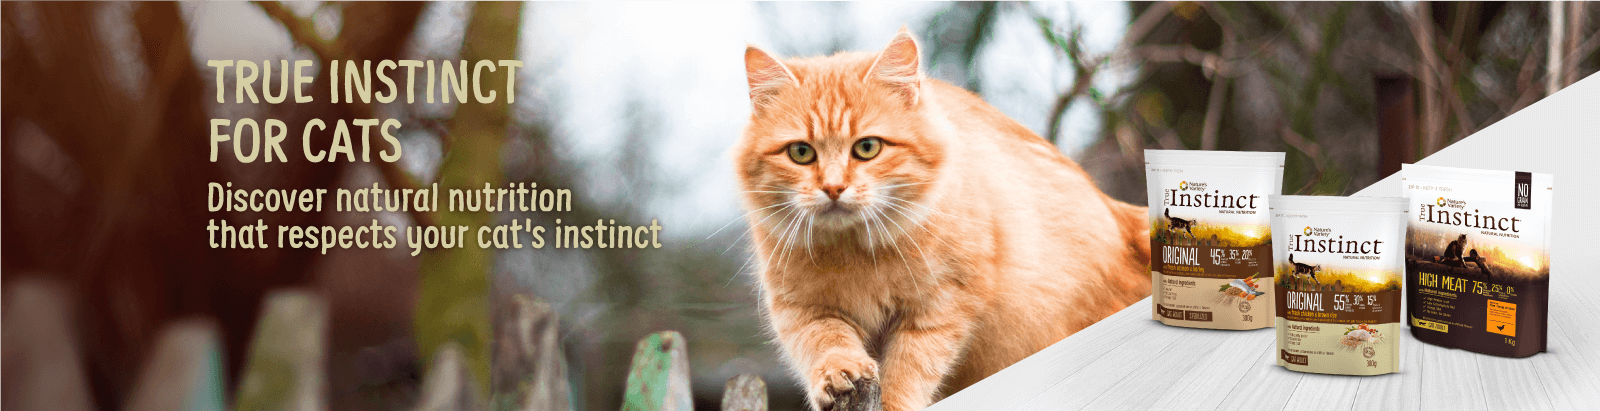 TRUE INSTINCT FOR CATS. Discover natural nutrition that respects your cat's instinct